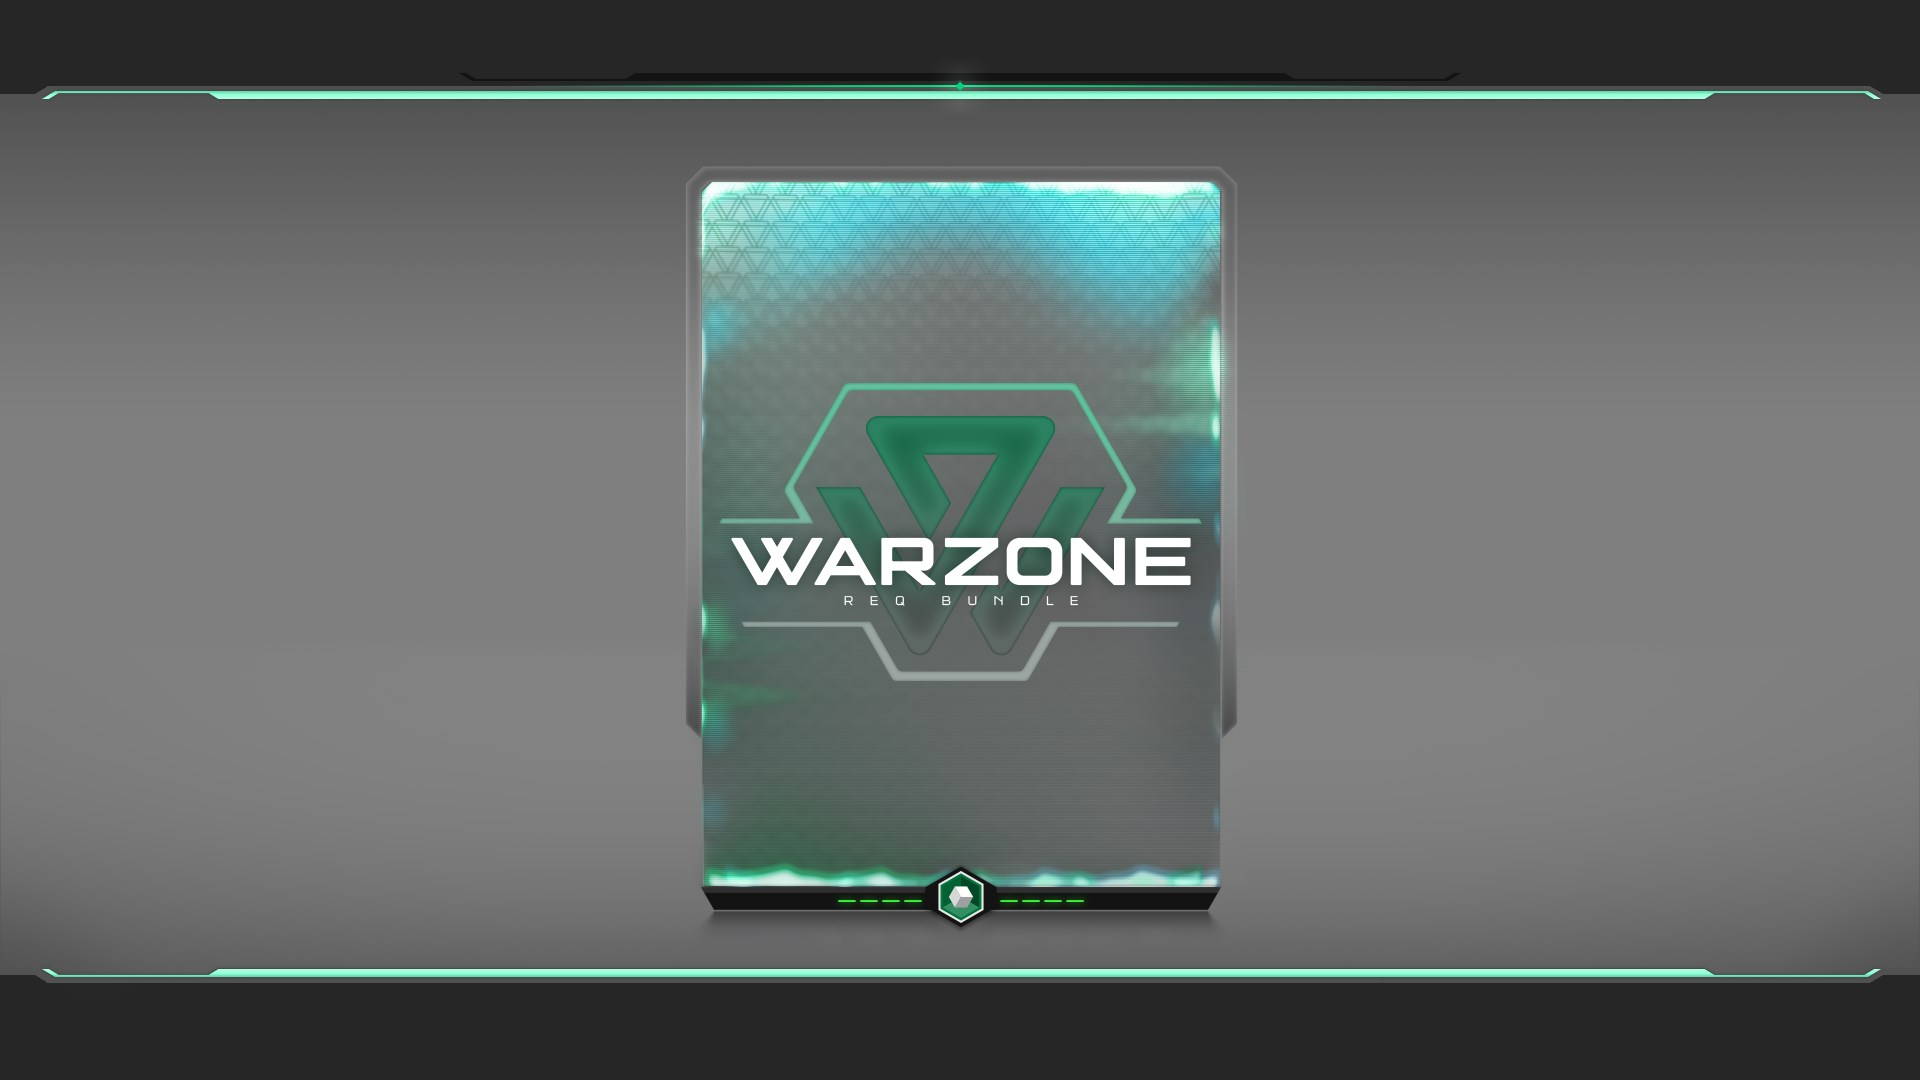 Halo 5: Guardians – Warzone REQ Bundle